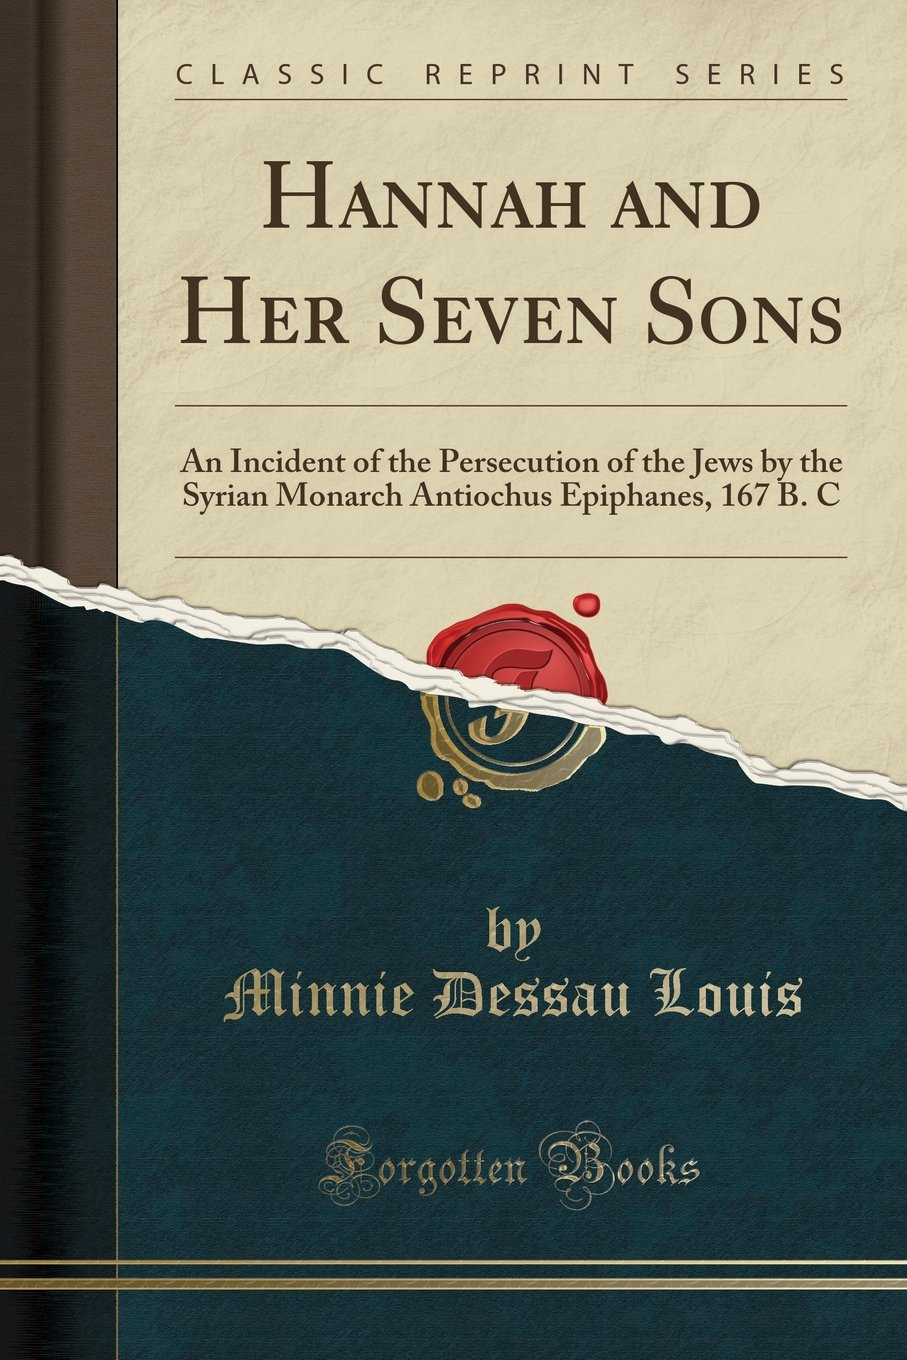 Hannah and Her Seven Sons: An Incident of the Persecution of the Jews by the Syrian Monarch Antiochus Epiphanes, 167 B. C (Classic Reprint) pdf